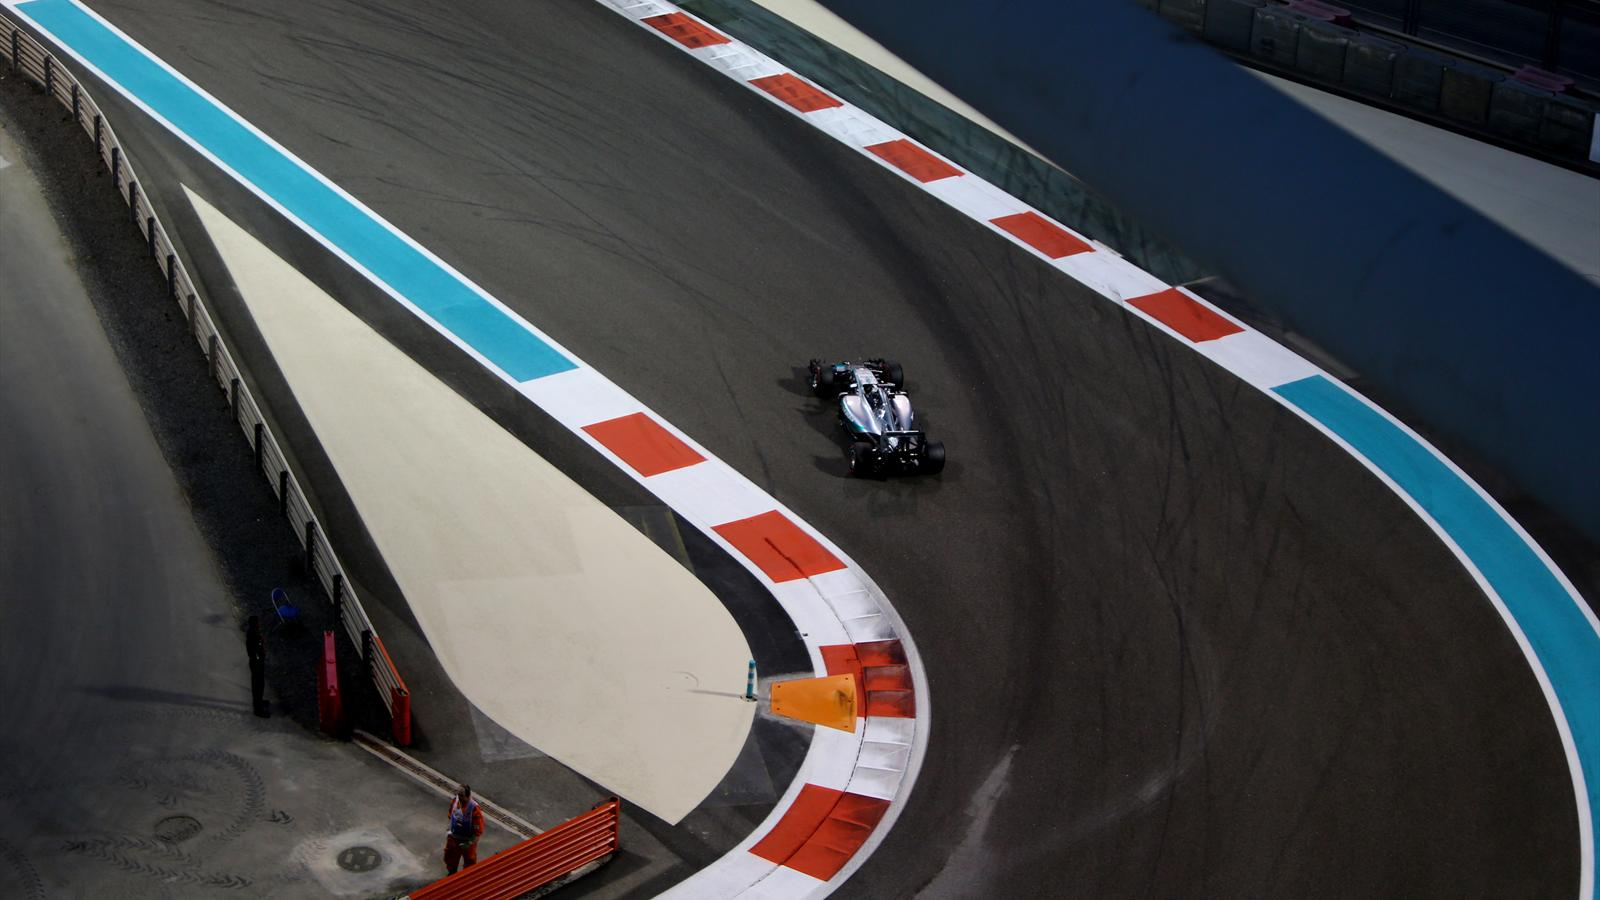 Mercedes AMG Petronas F1 Team's German driver Nico Rosberg drives during the second practice session at the Yas Marina circuit in Abu Dhabi on November 27, 2015 ahead of the Abu Dhabi Formula One Grand Prix